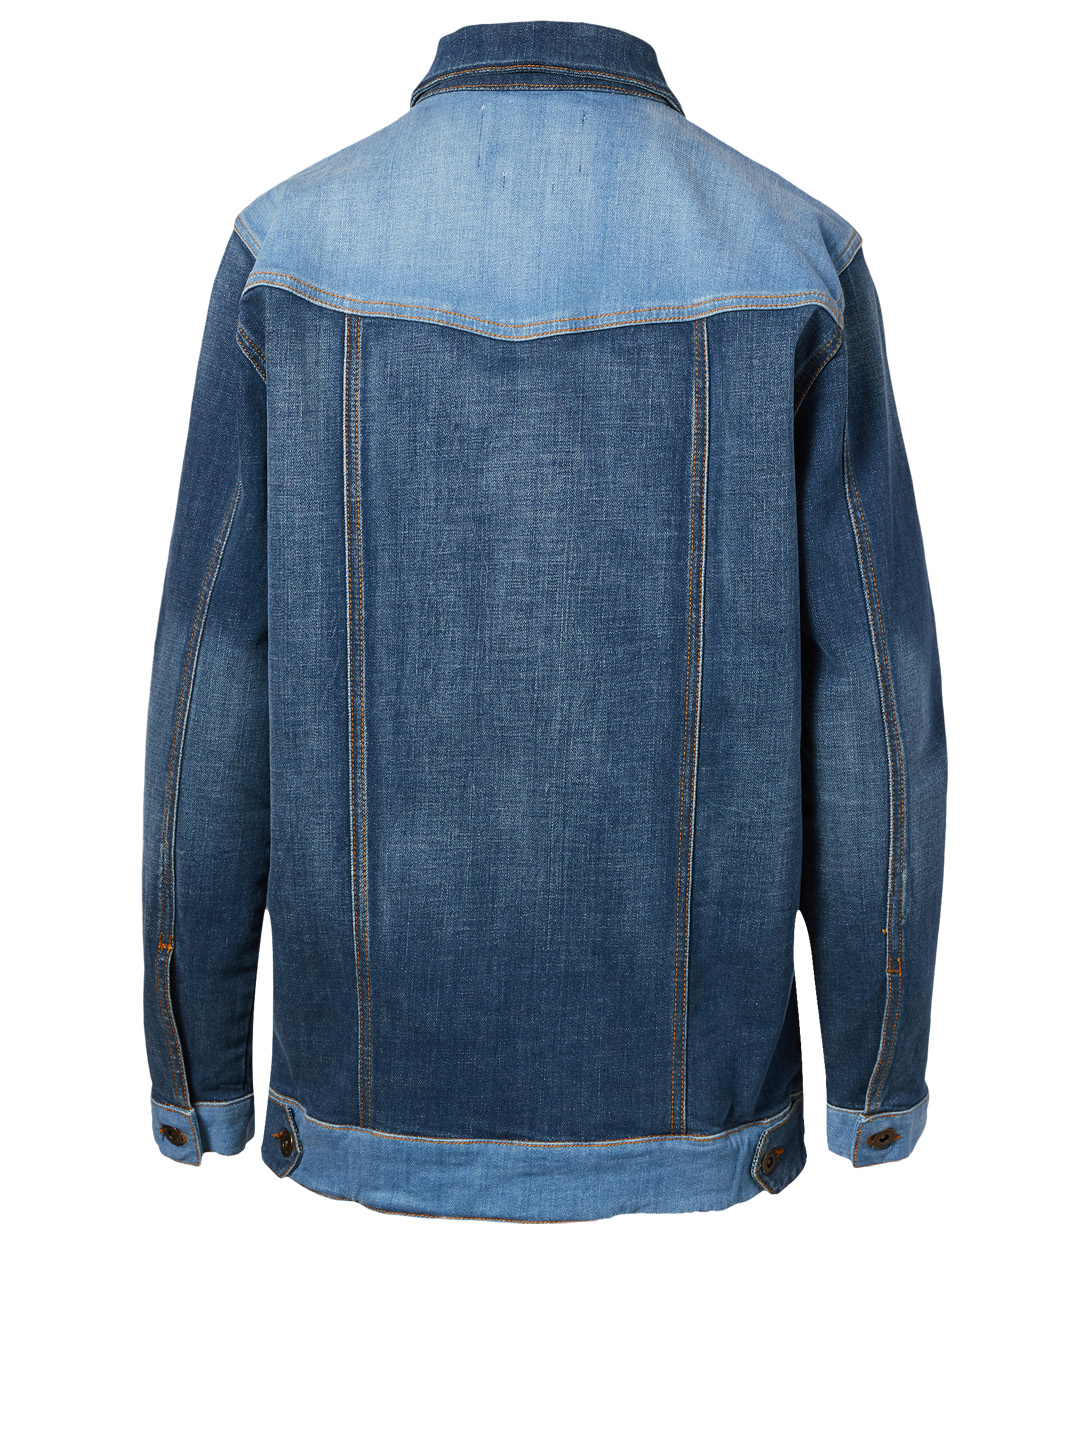 OUTLAND DENIM Ava Patchwork Jean Jacket H Project Blue